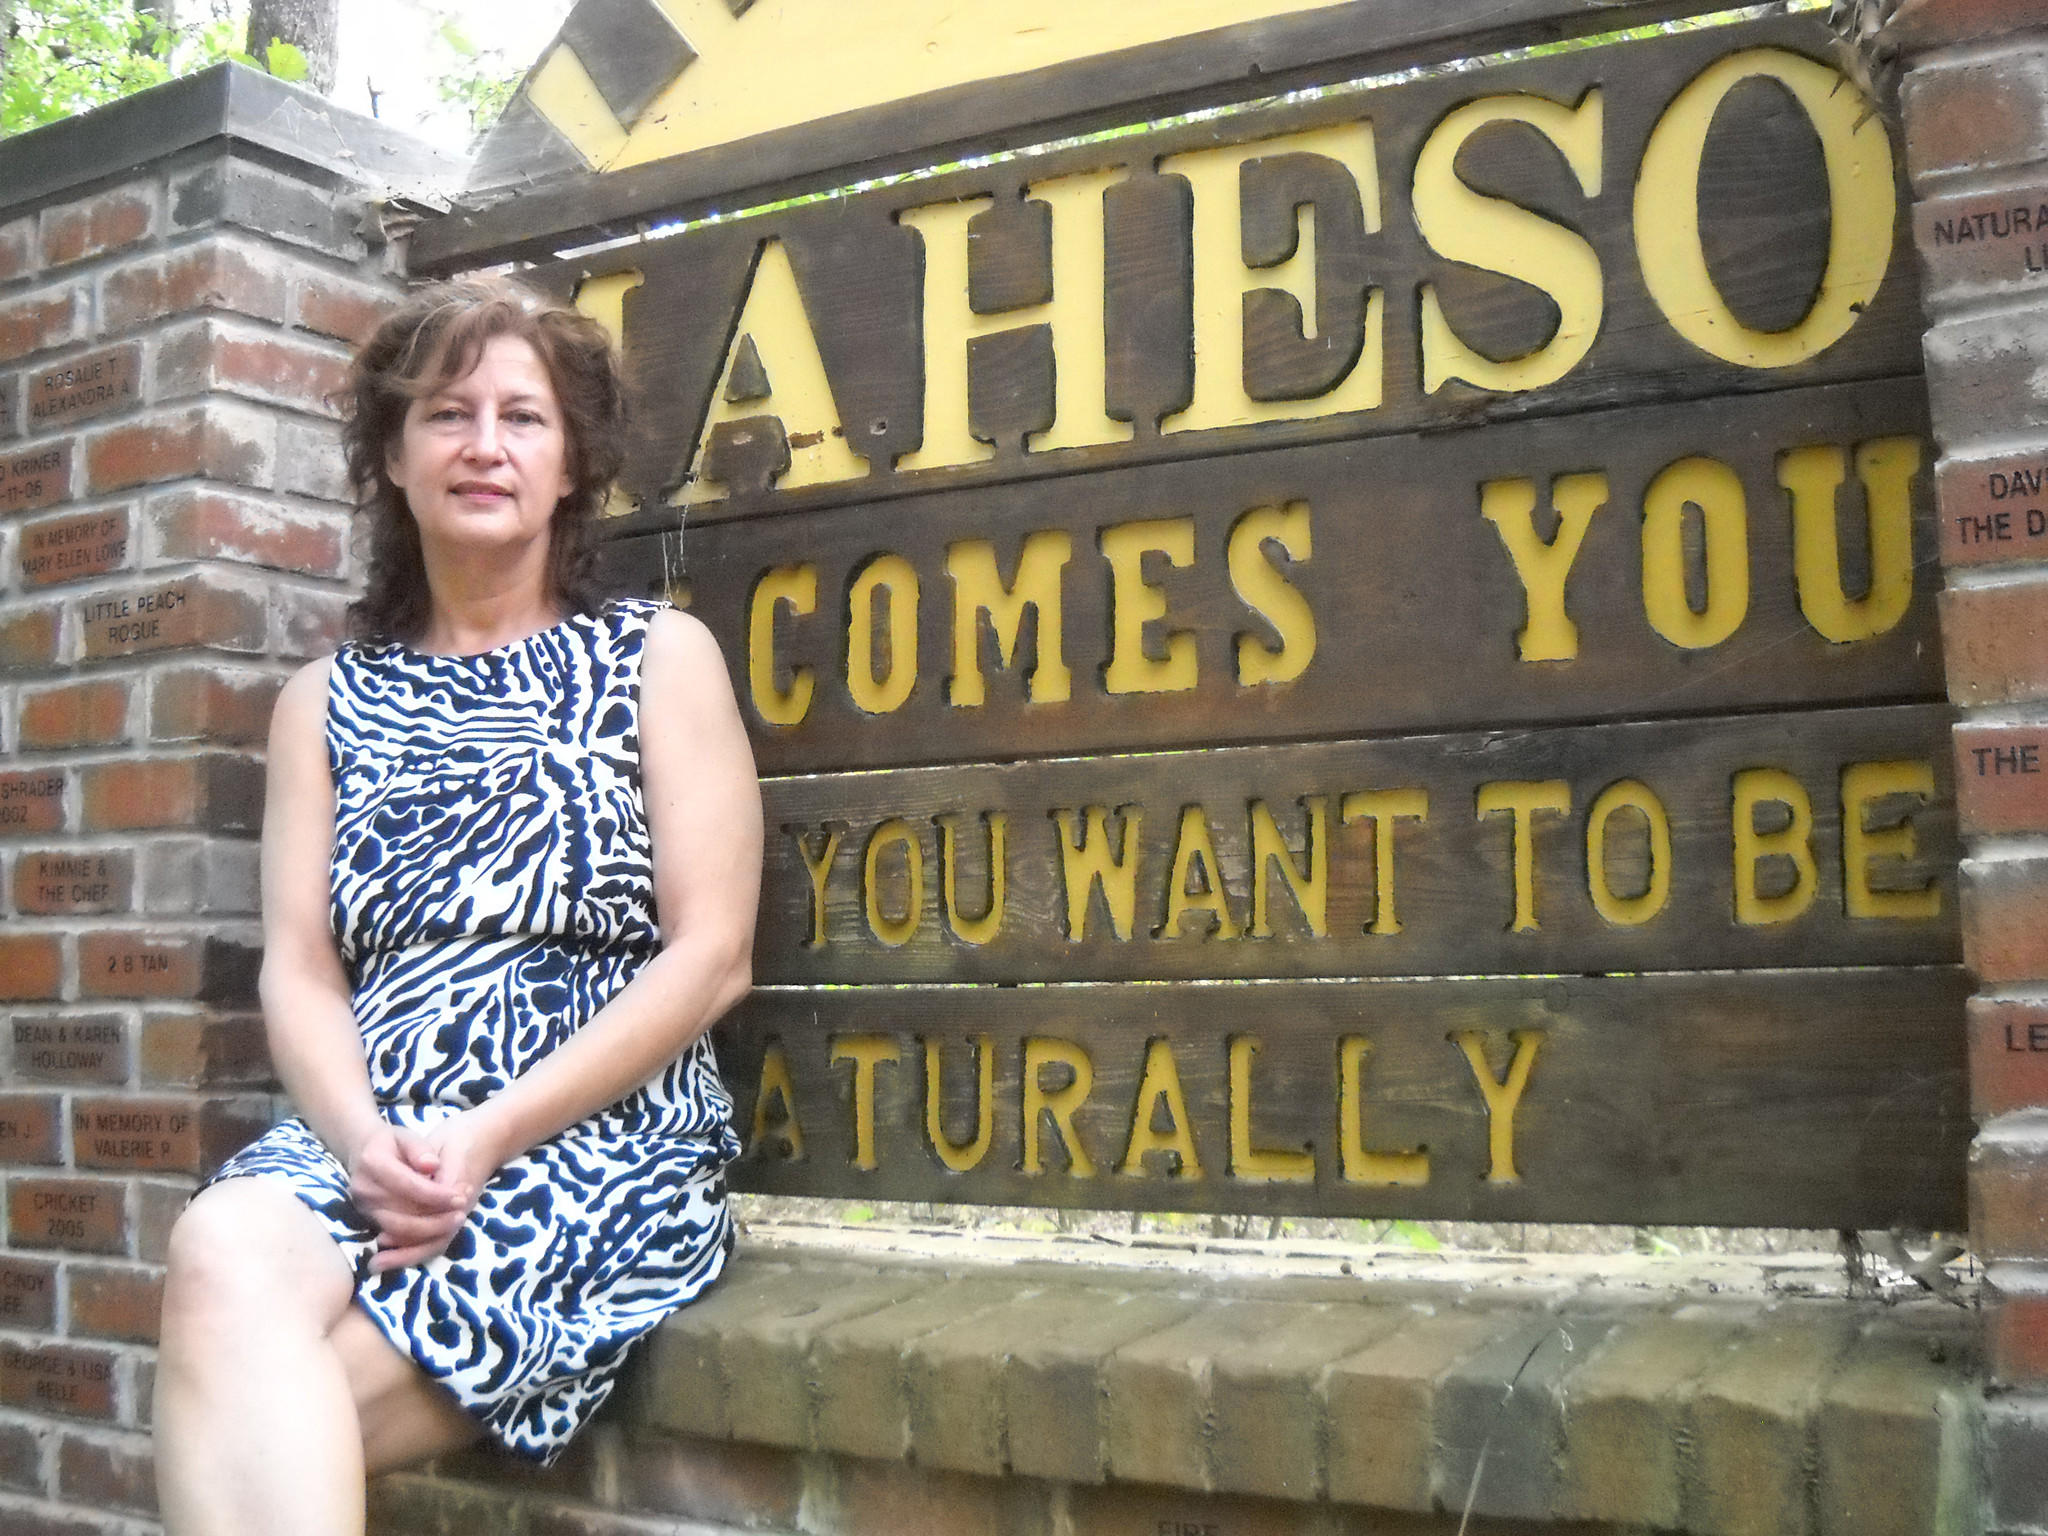 Catherine Holmes, 54, shown last summer at the entrance of the Maryland Health Society, a nudist camp in Davidsonville.